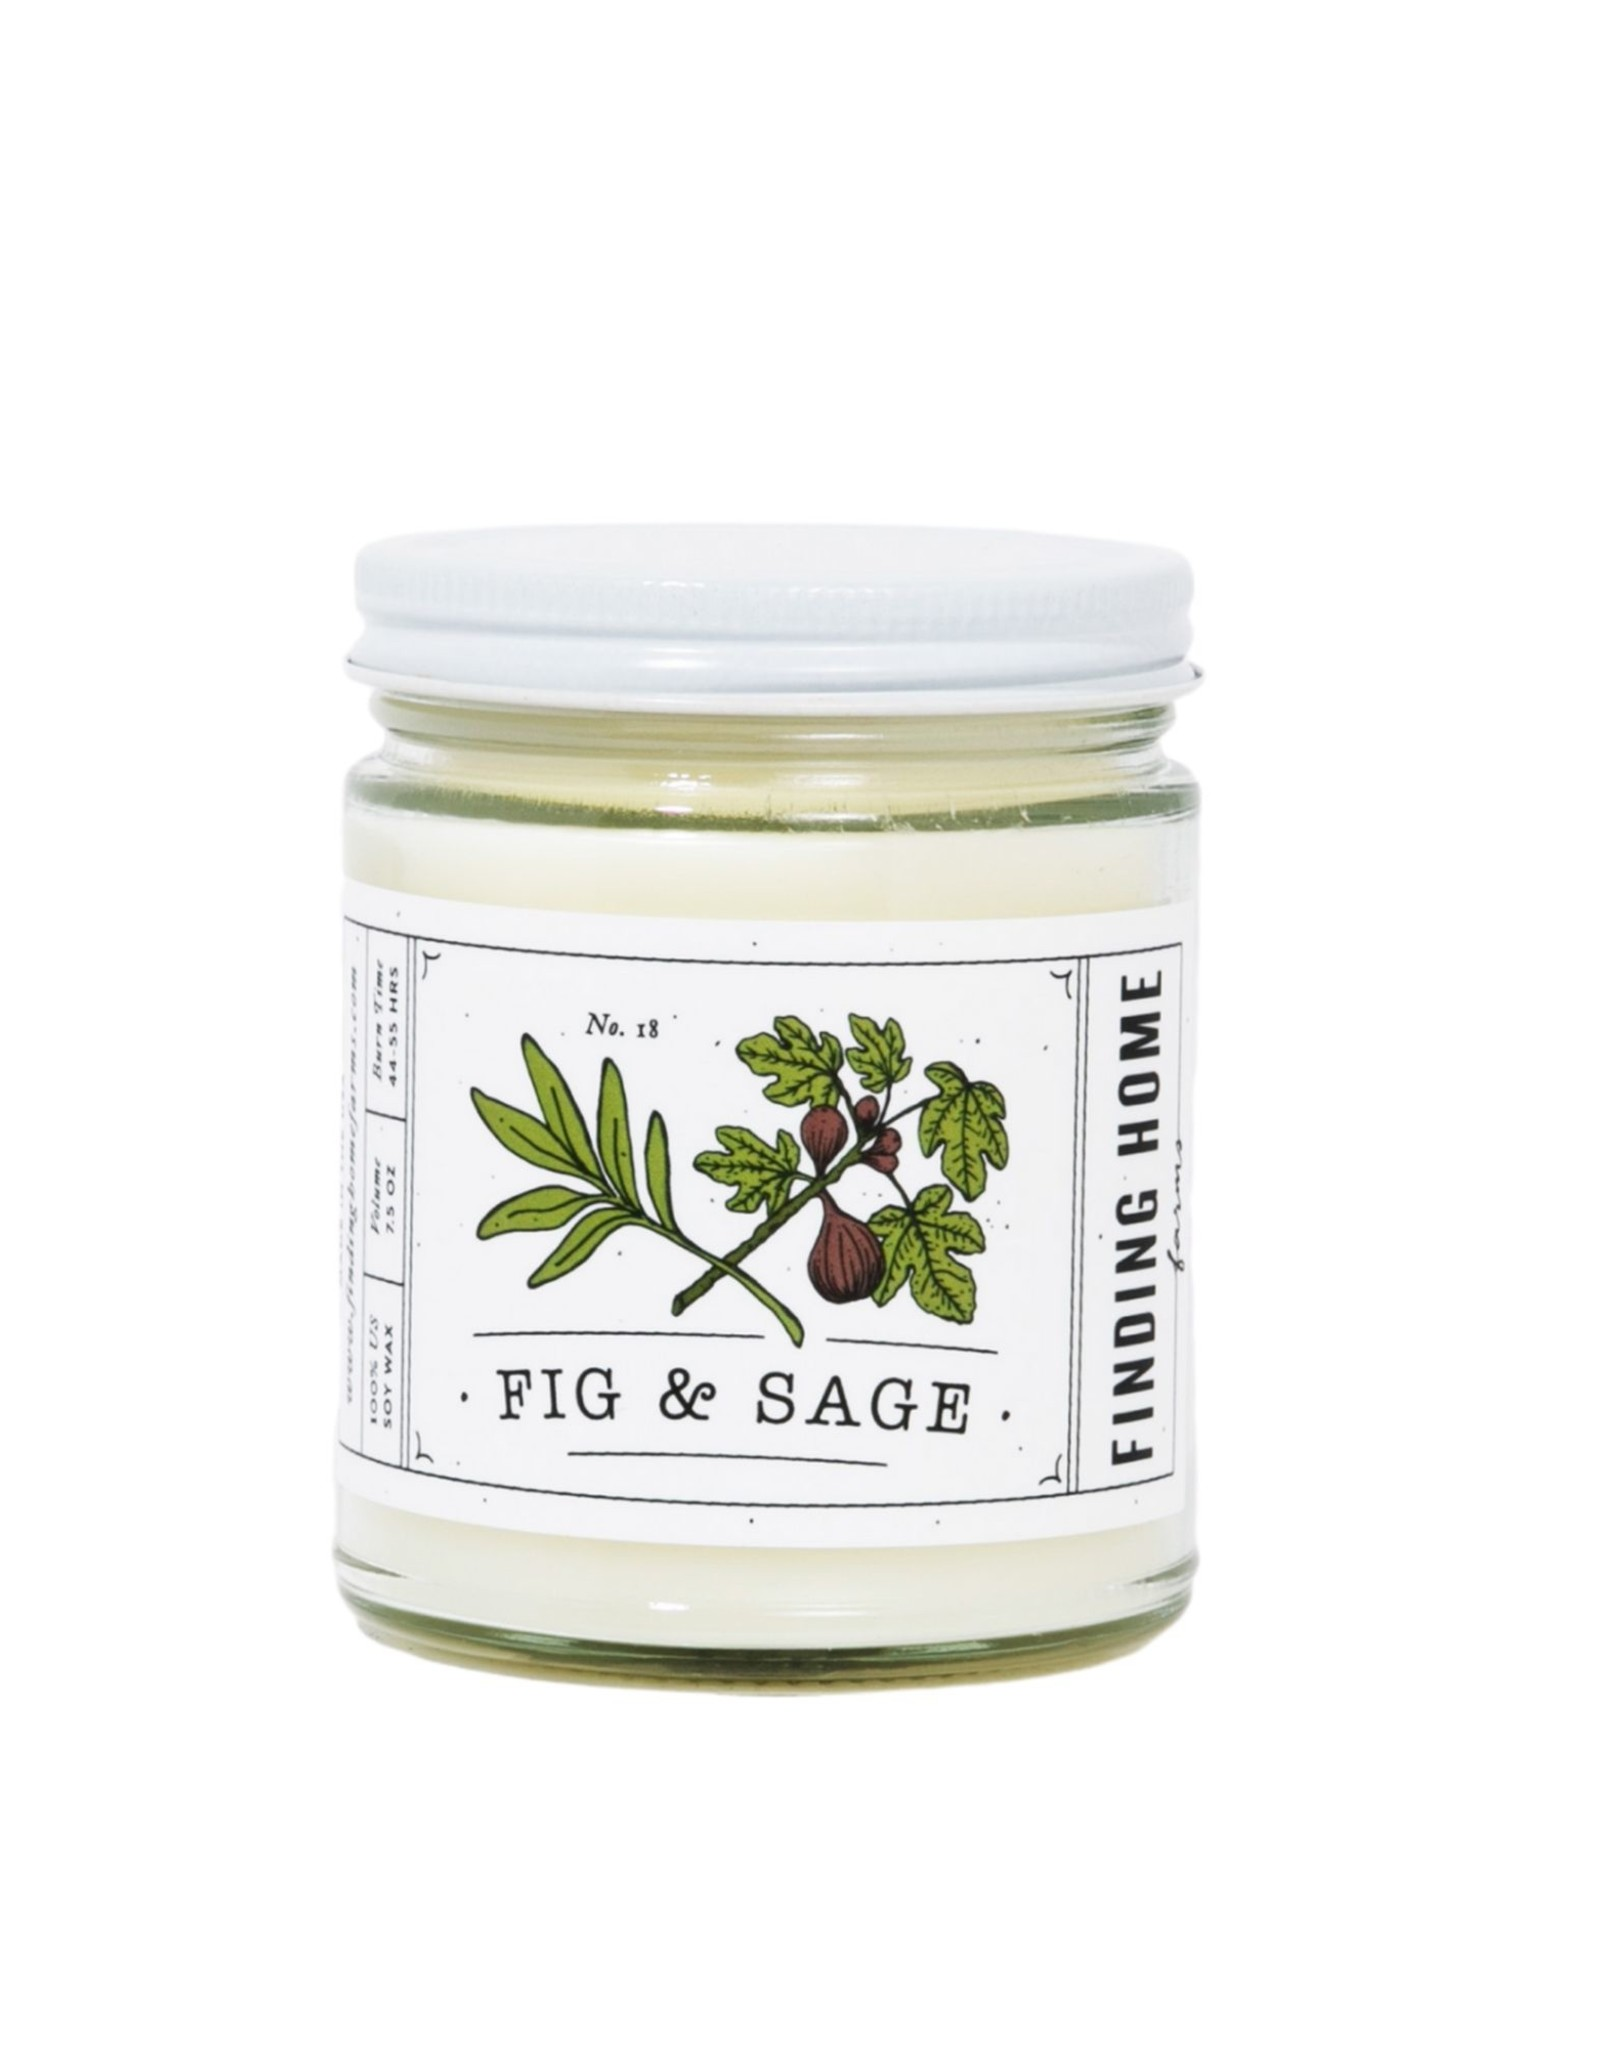 Finding Home Farms Fig & Sage Candle - 7.5oz